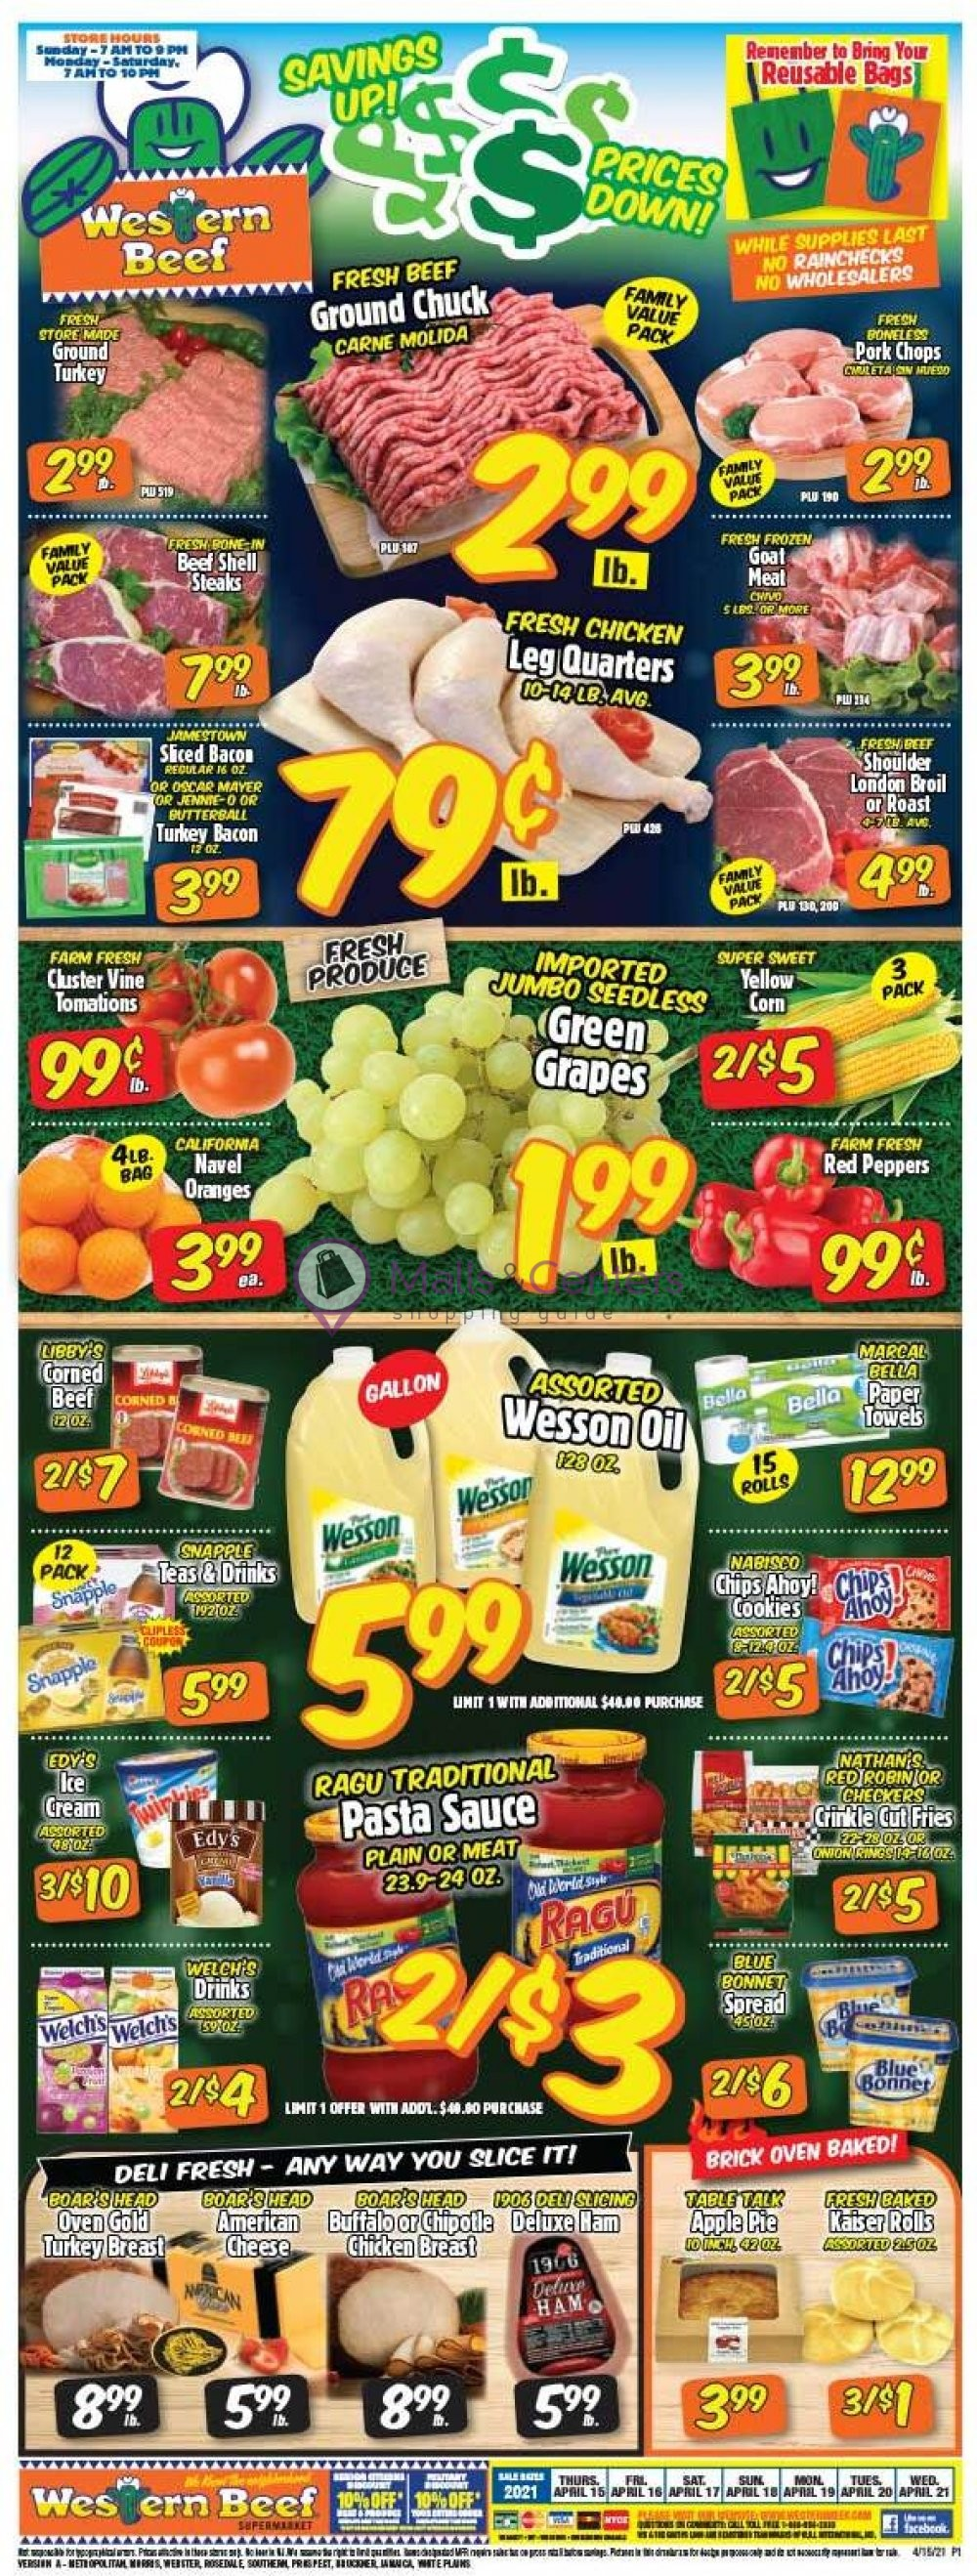 weekly ads Western Beef - page 1 - mallscenters.com